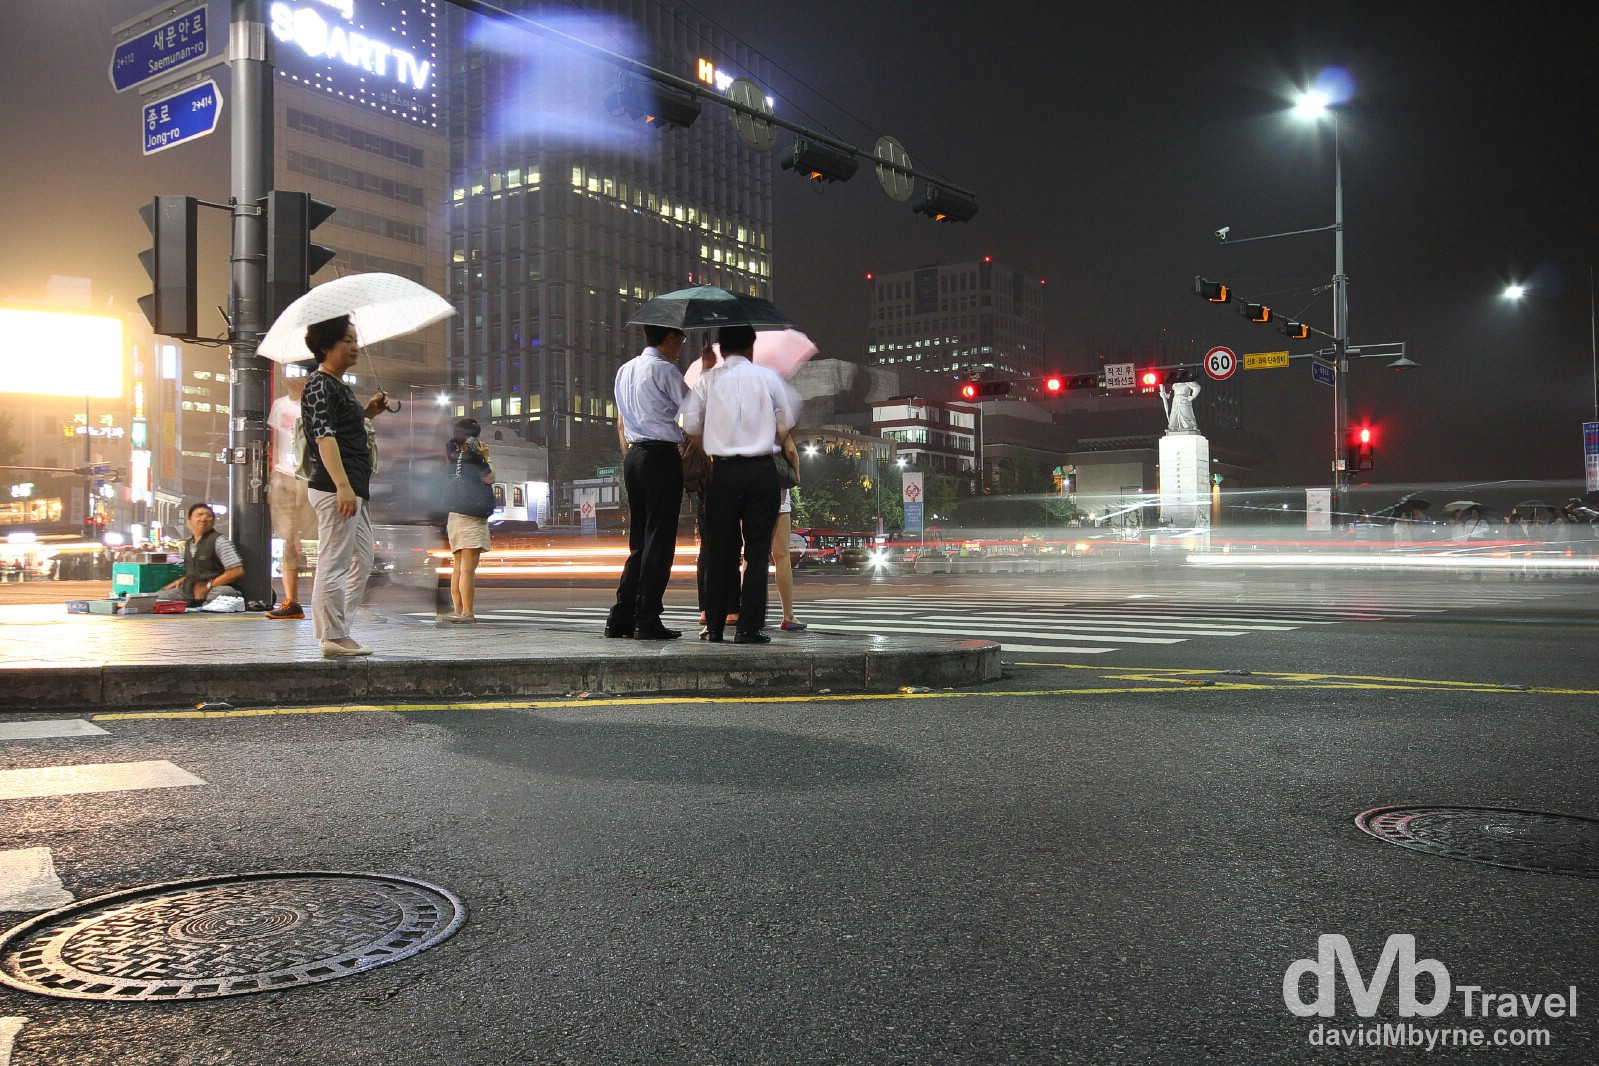 Waiting in the light rain at a traffic junction in Jongno, Seoul, South Korea. July 12th 2012.